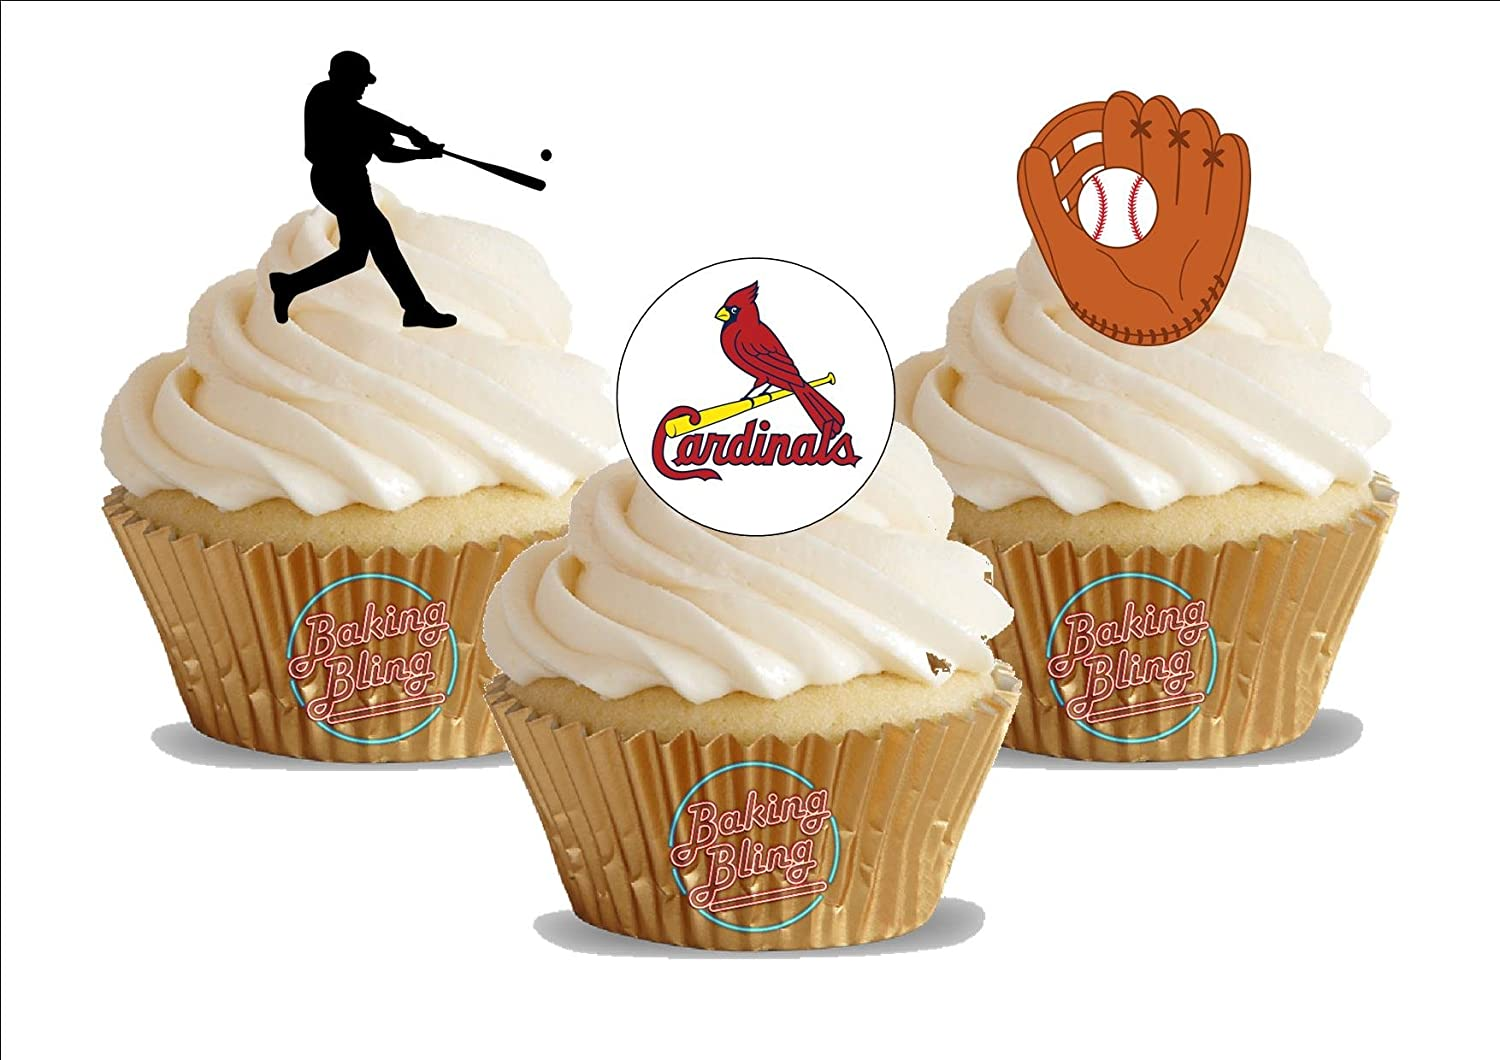 Astounding Amazon Com 12 X Baseball St Louis Cardinals Mix Fun Novelty Funny Birthday Cards Online Fluifree Goldxyz